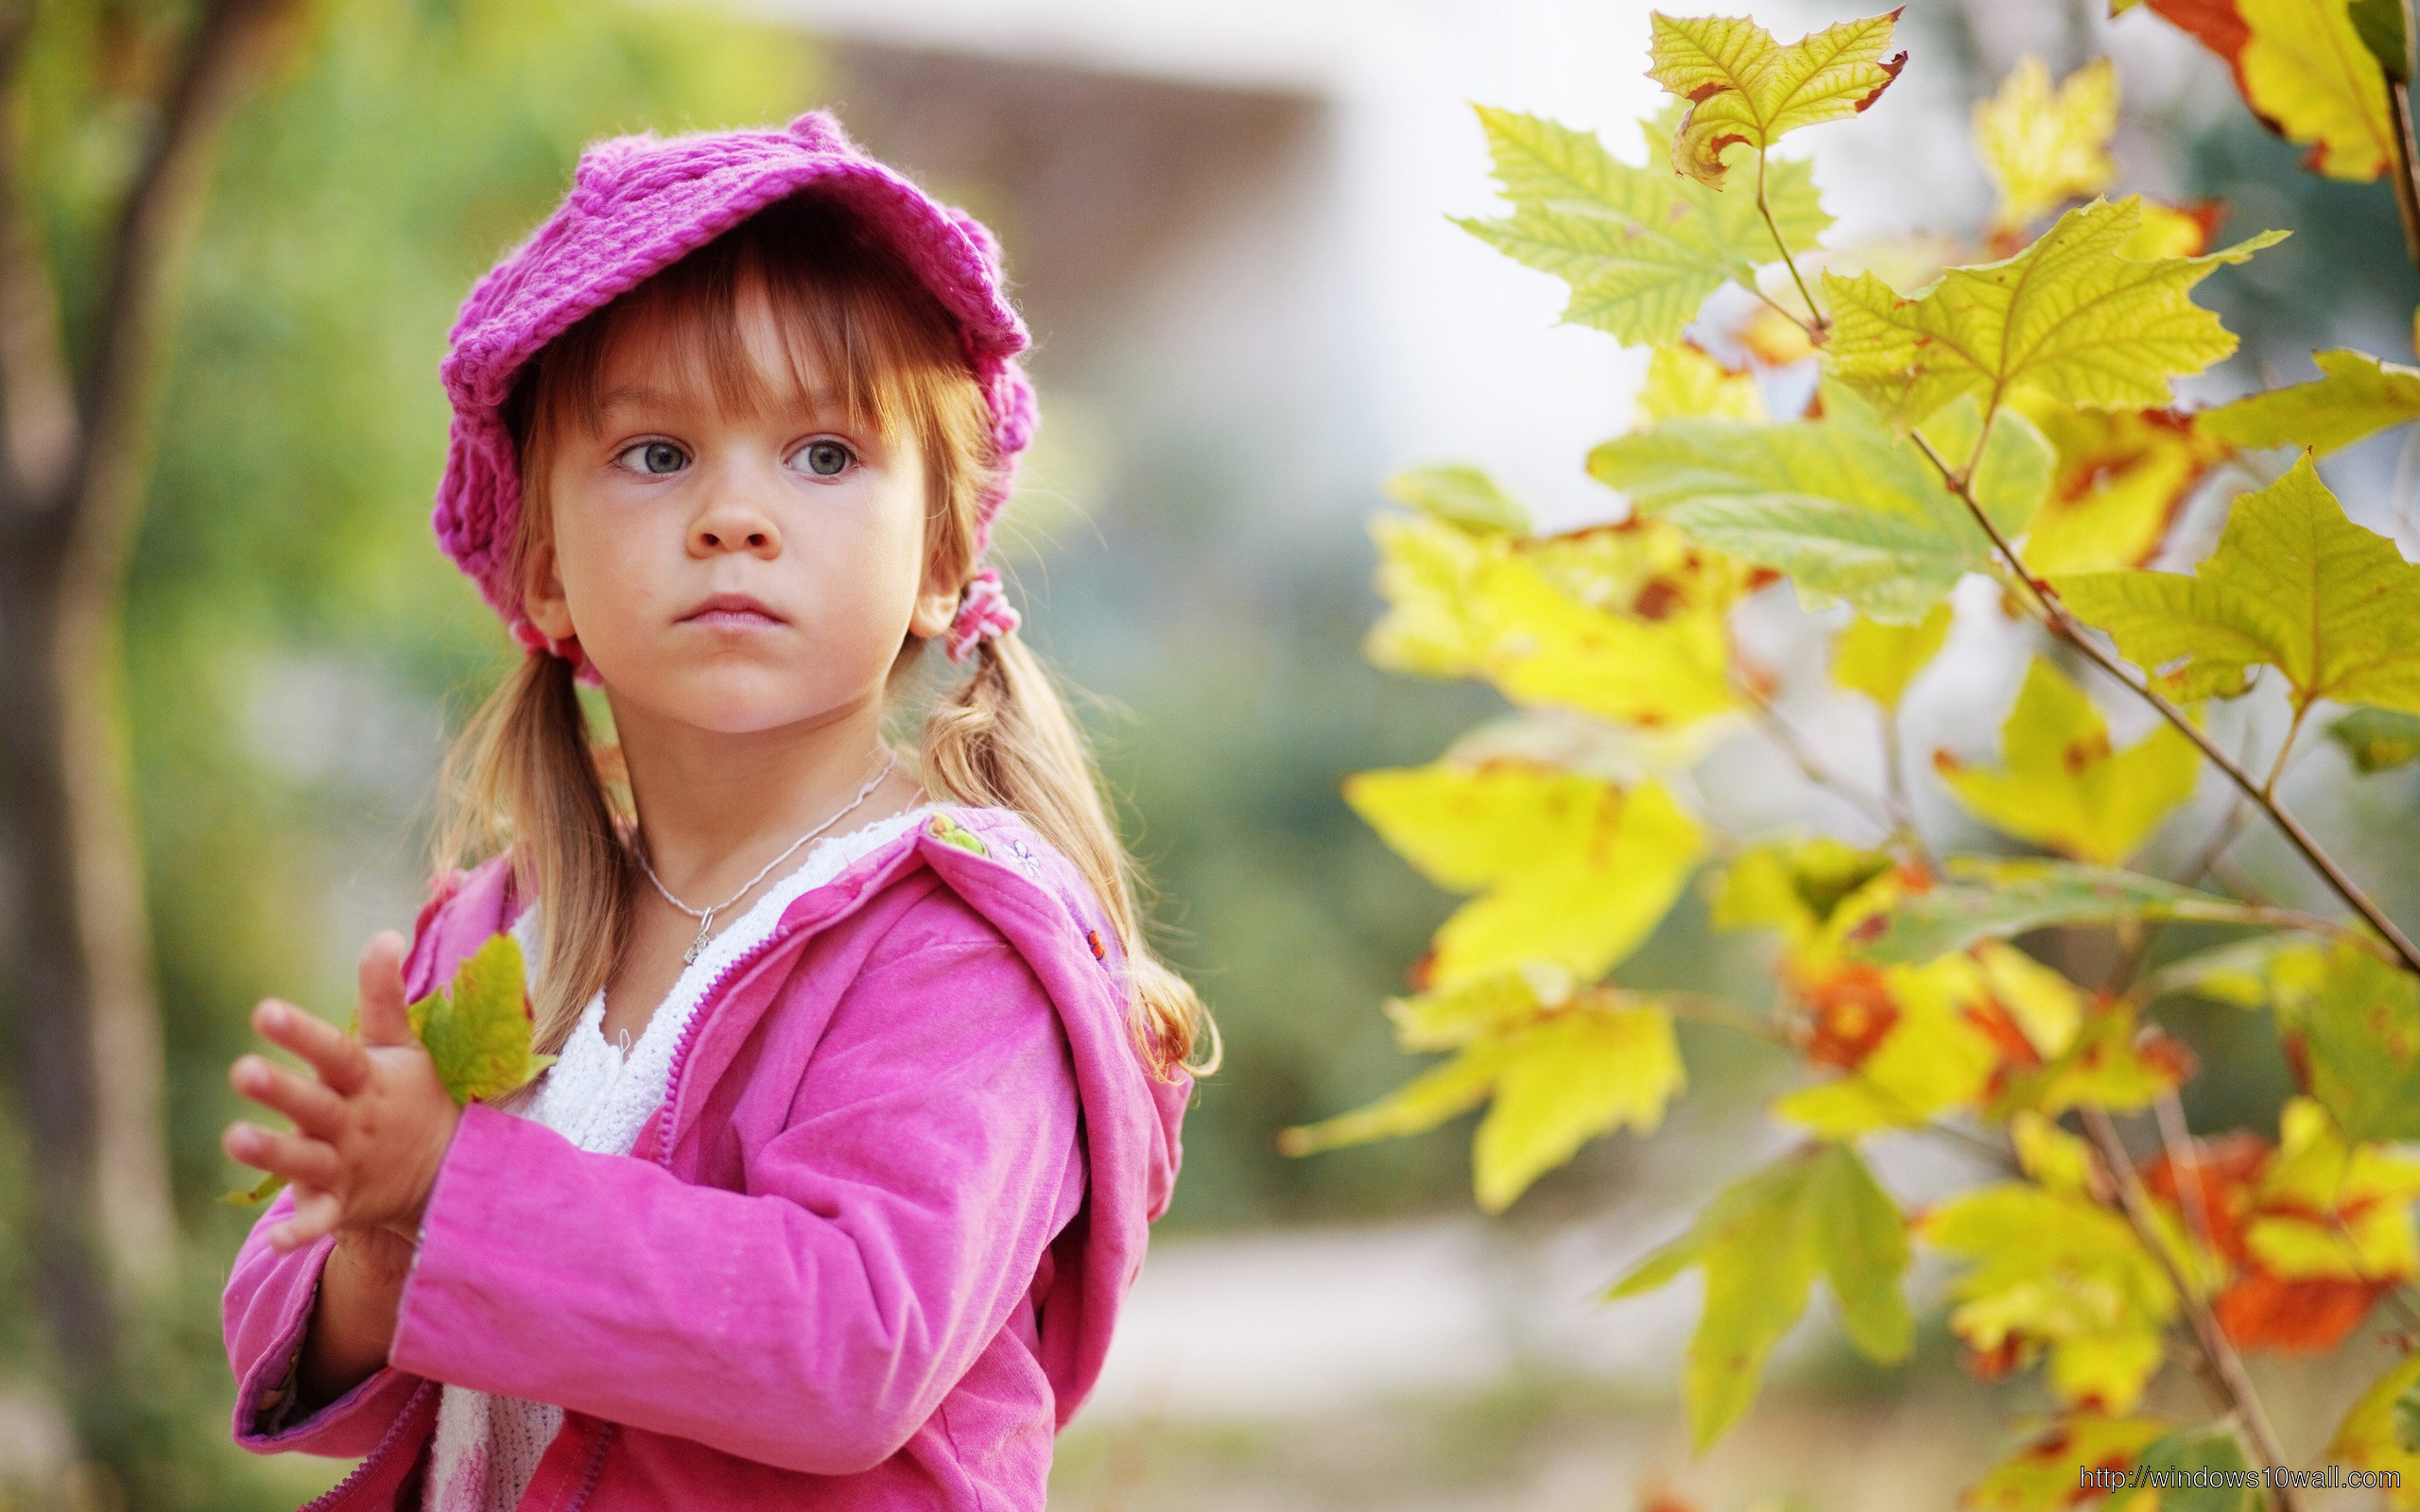 Cute baby girl latest hd wallpapers 193 Views